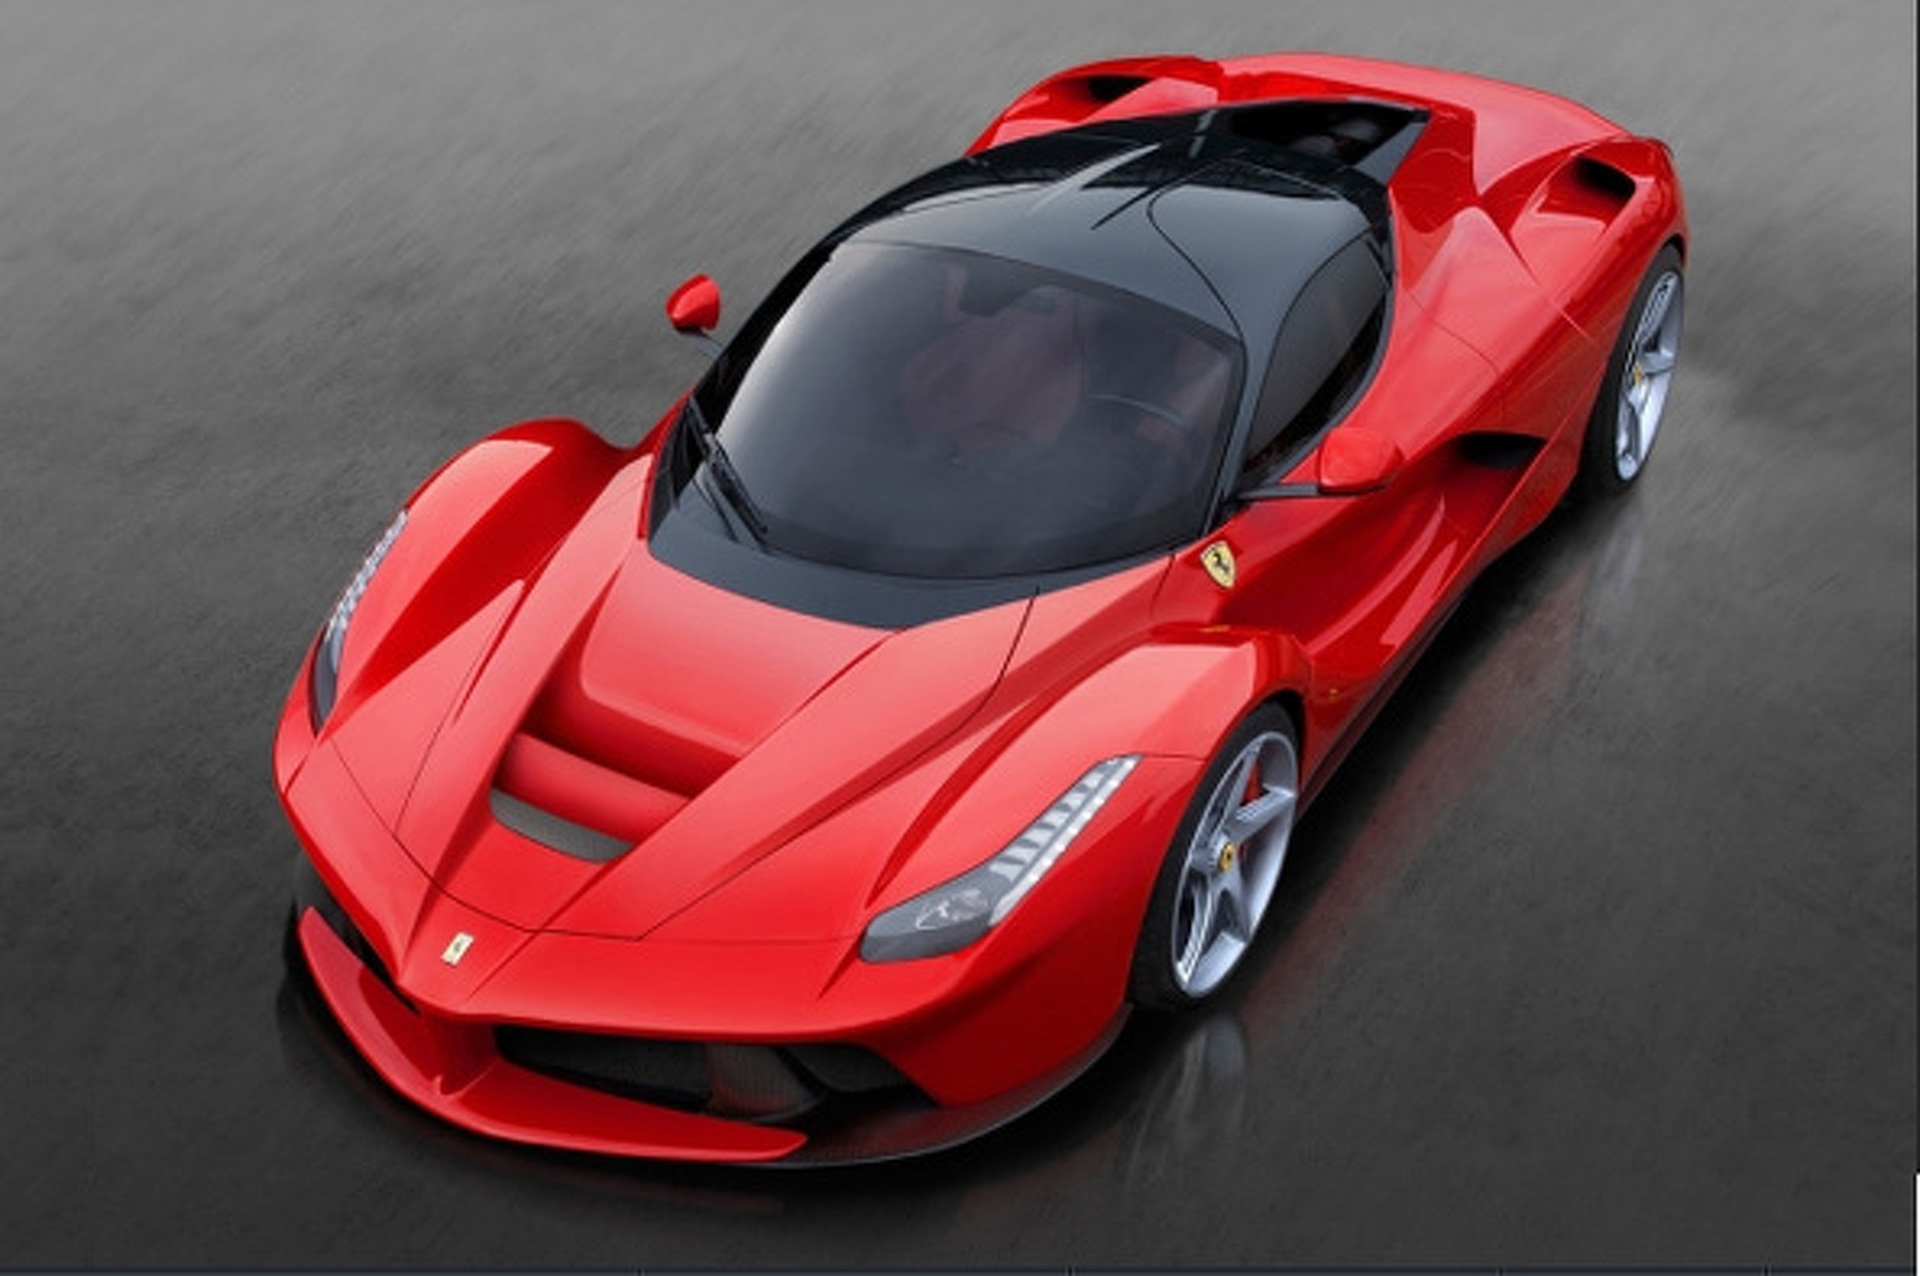 Ferrari Returning to Sportscar Racing: Porsche, McLaren to Follow?